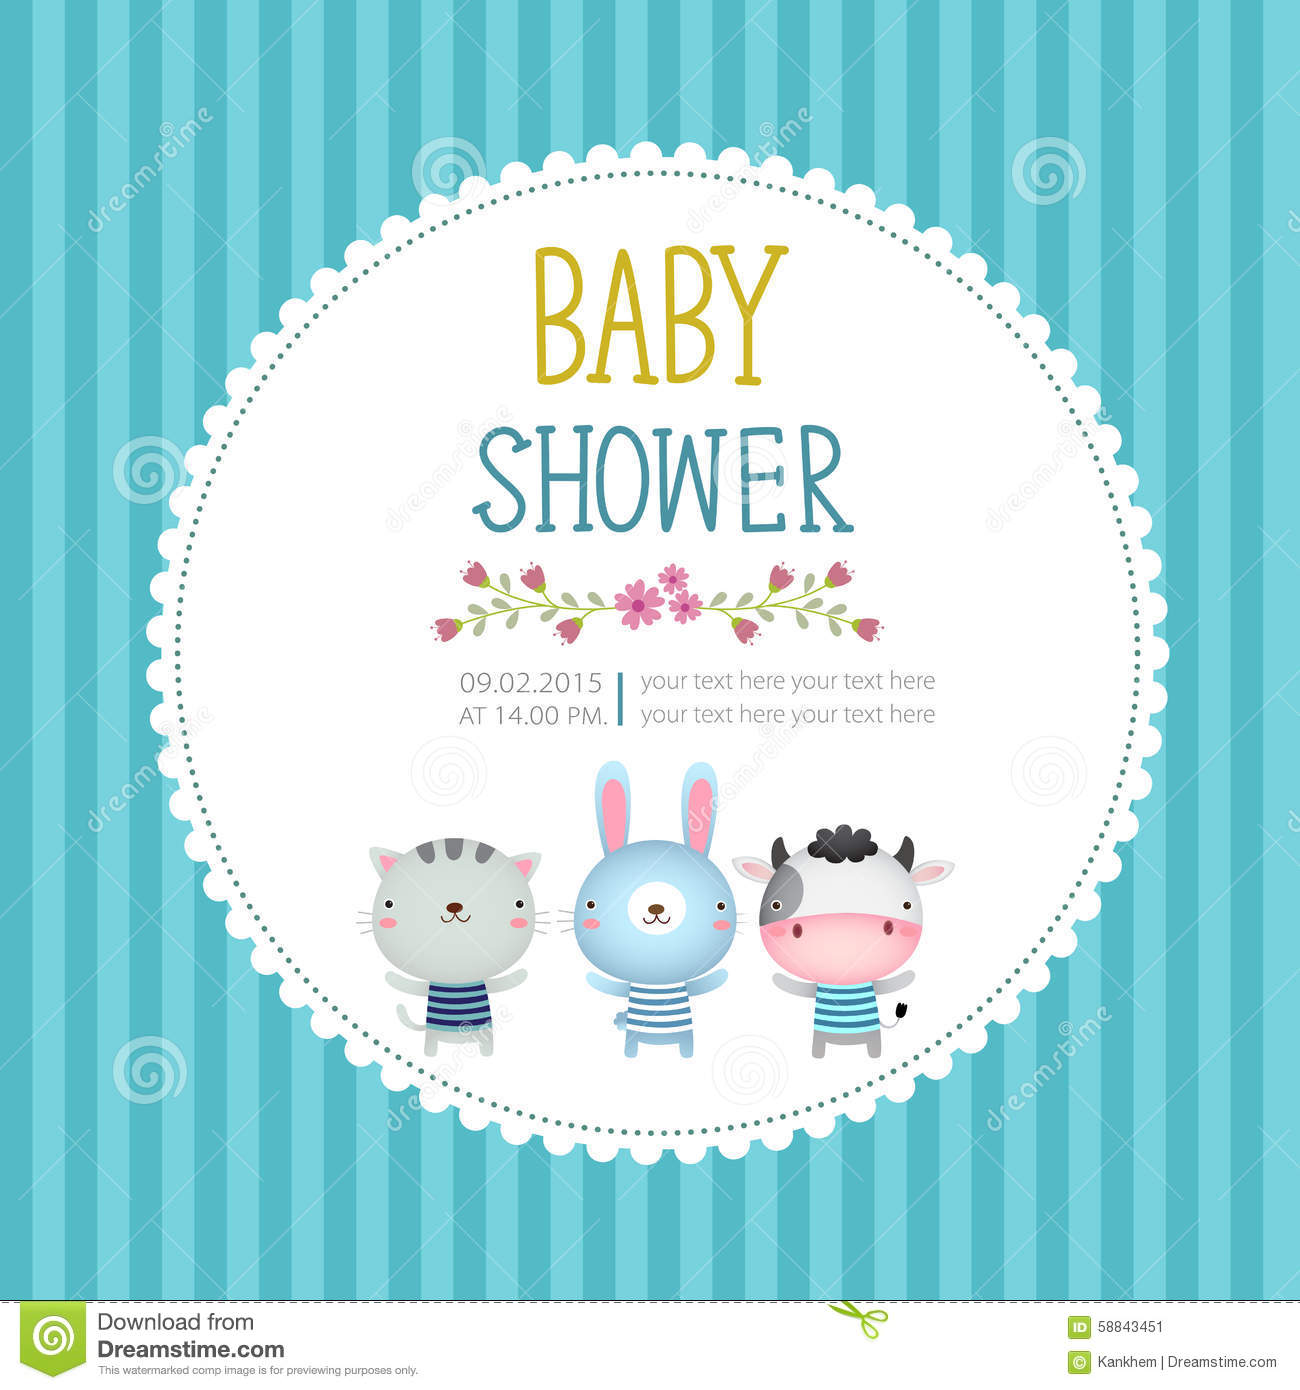 Baby Shower Invitation Card Template On Blue Background Stock Vector - Card template free: invitation card template for baby shower